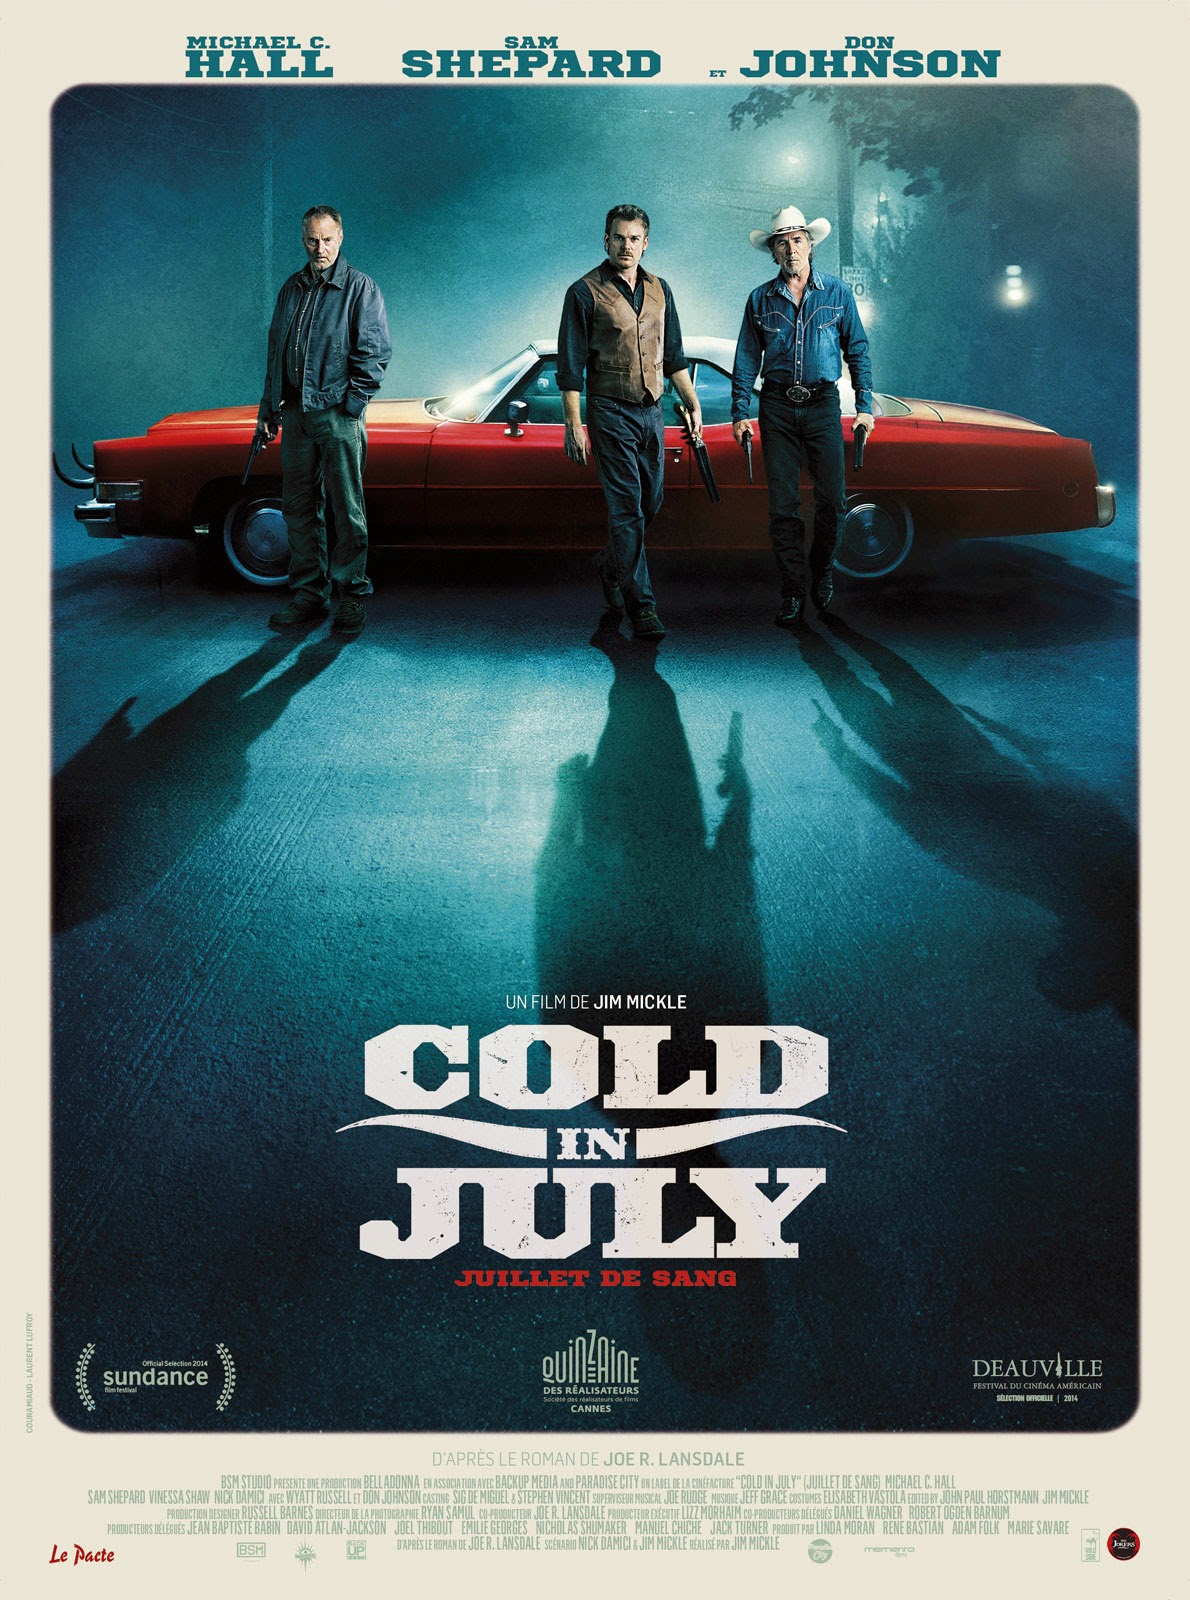 http://fuckingcinephiles.blogspot.fr/2014/12/critique-cold-in-july.html